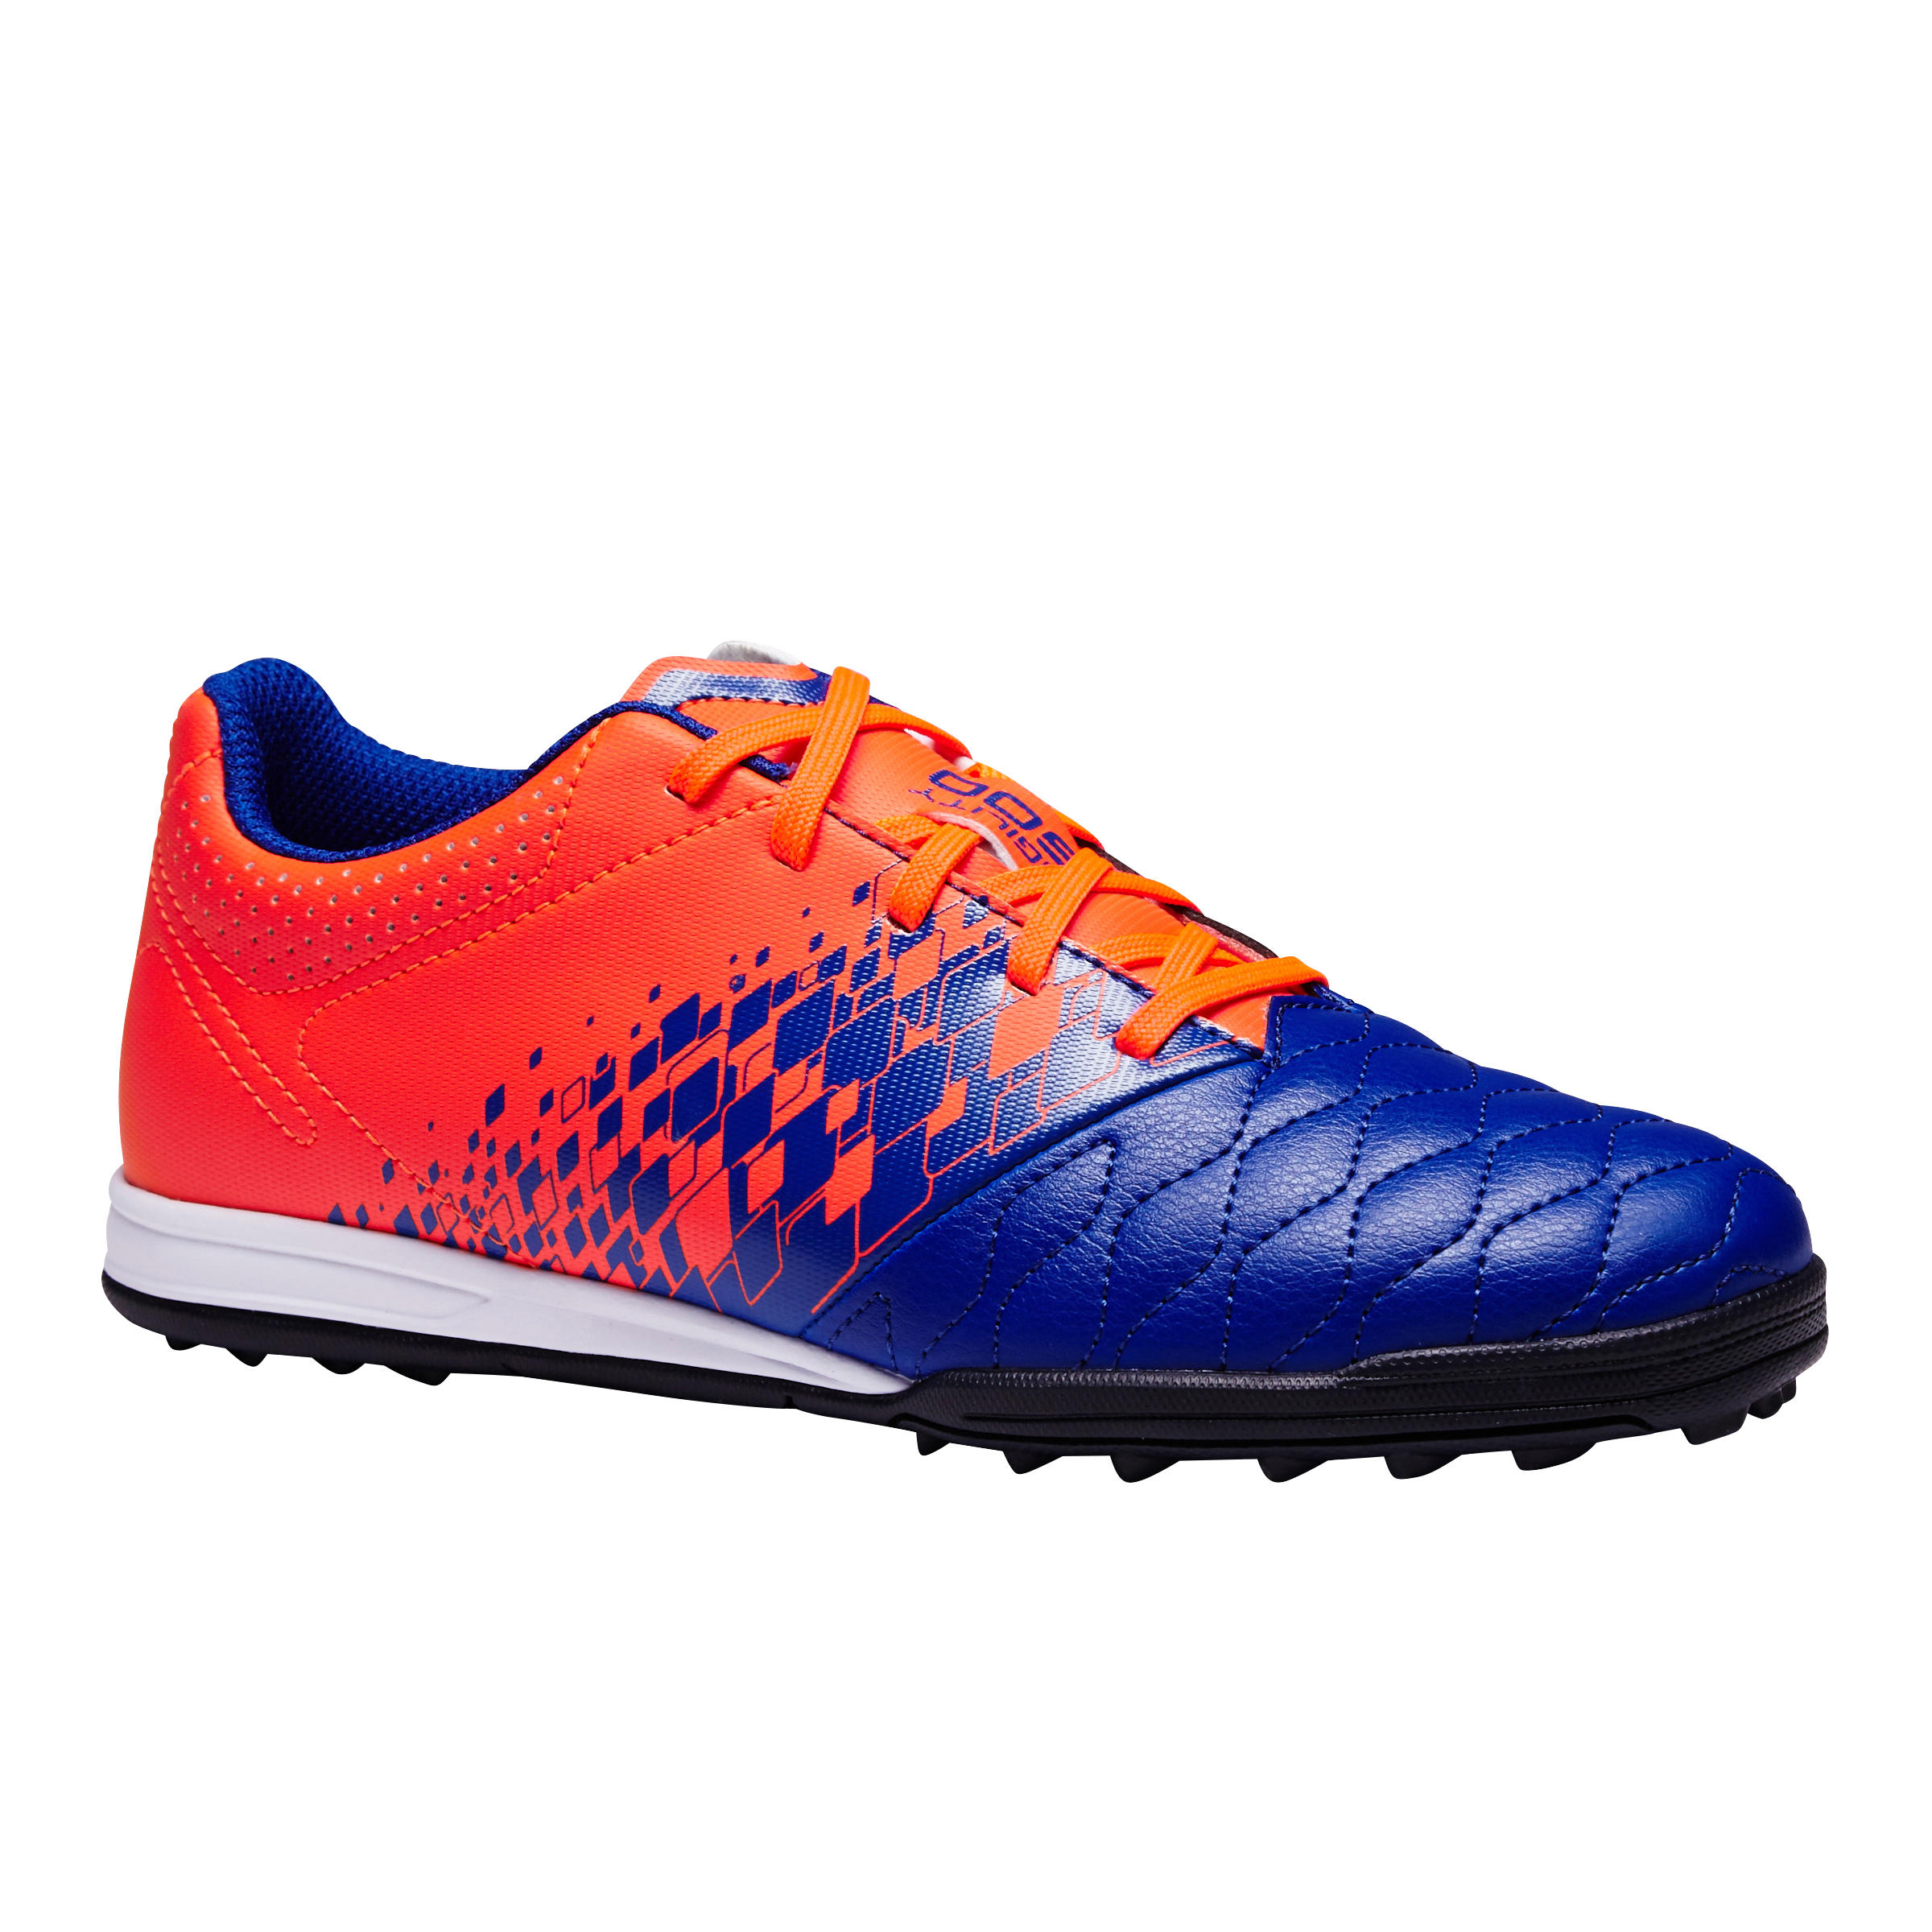 Agility 500 HG Kids Hard Pitch Soccer Shoes - Blue/Orange